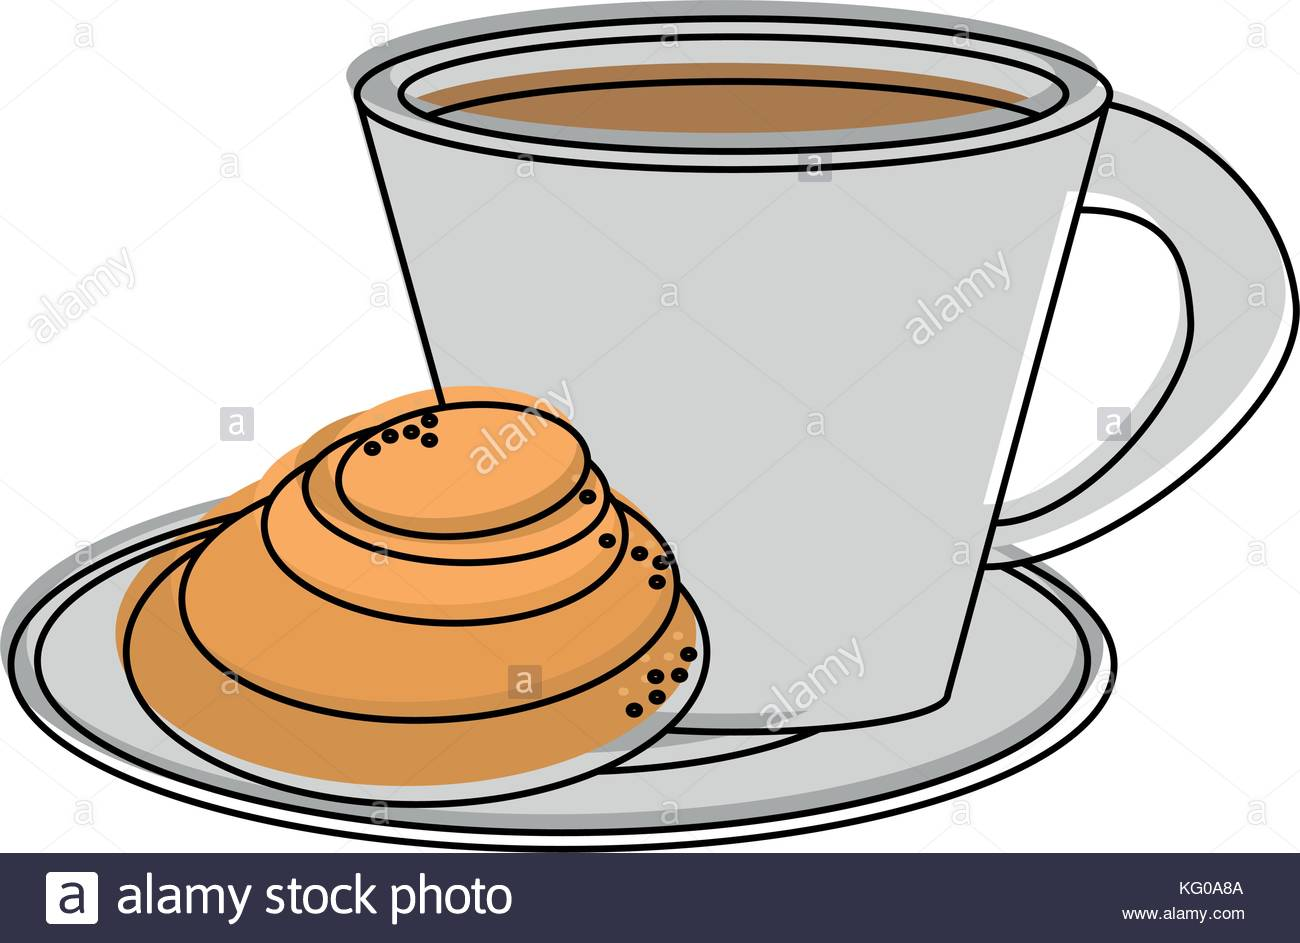 coffee with pastry icon image Stock Vector Art & Illustration.